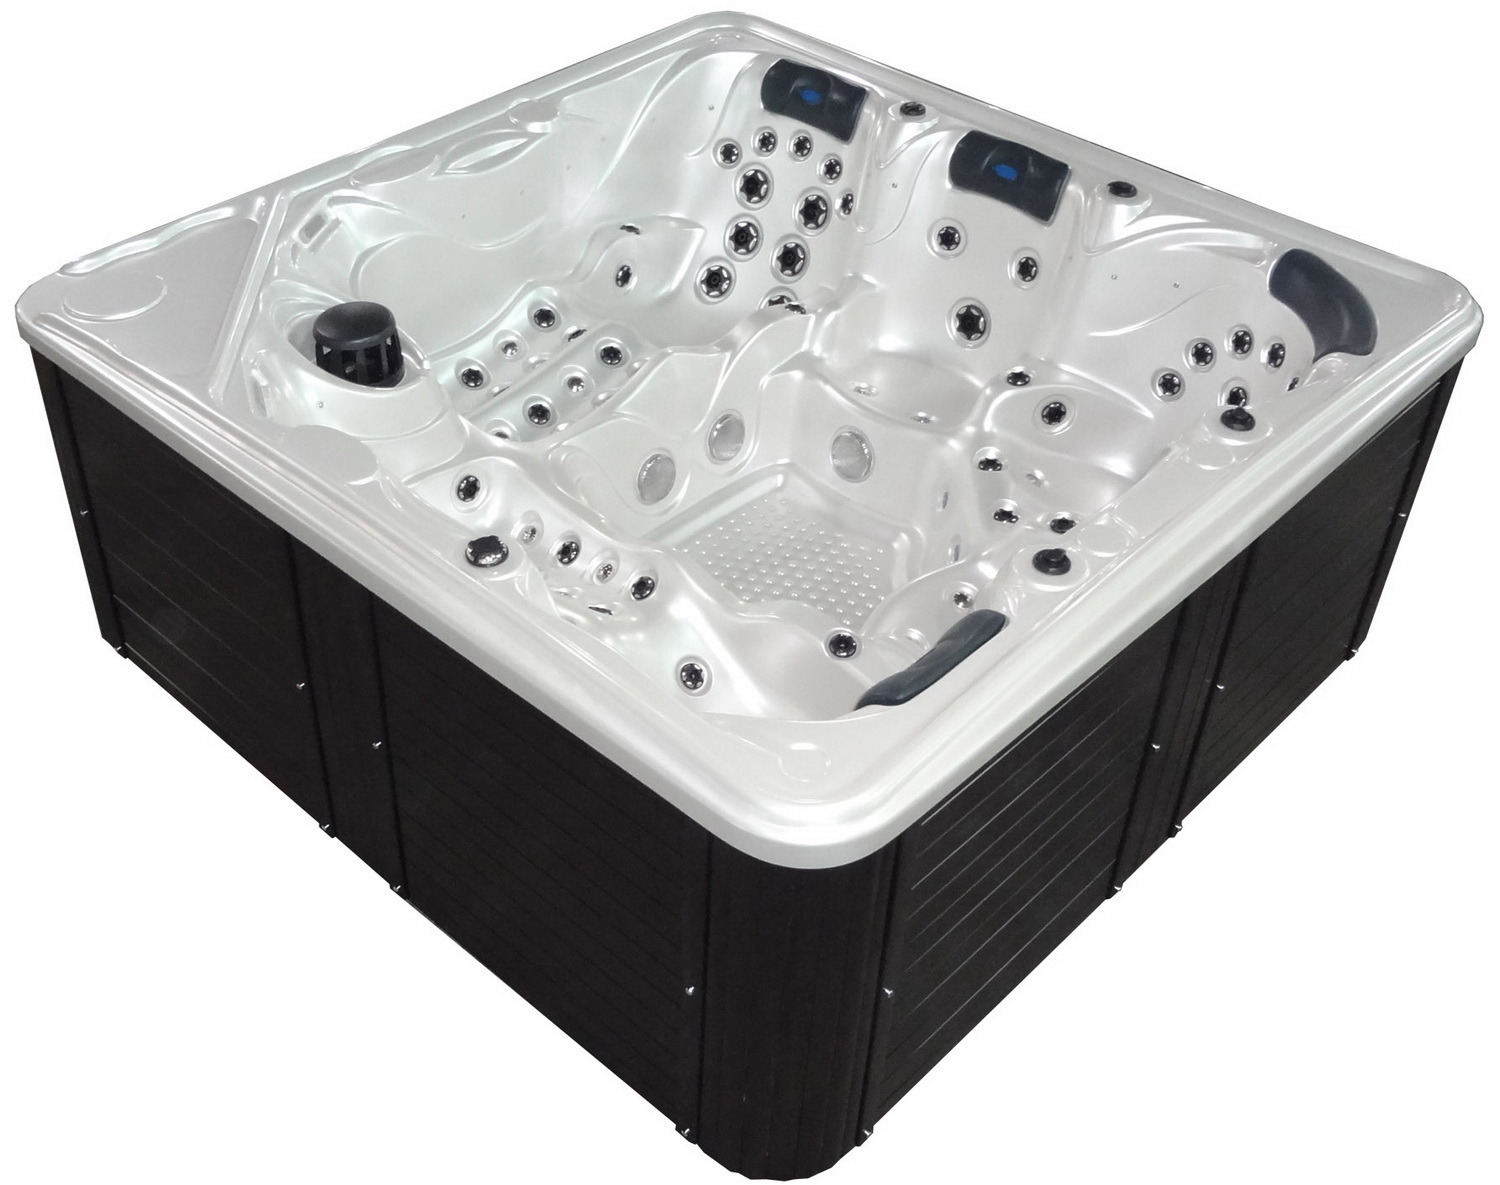 Whirlpool Outdoor Swim Spa Hot Item Outdoor Hydro 5 Persons103 Jets Whirlpool Bathtub Swim Spa Hot Tub